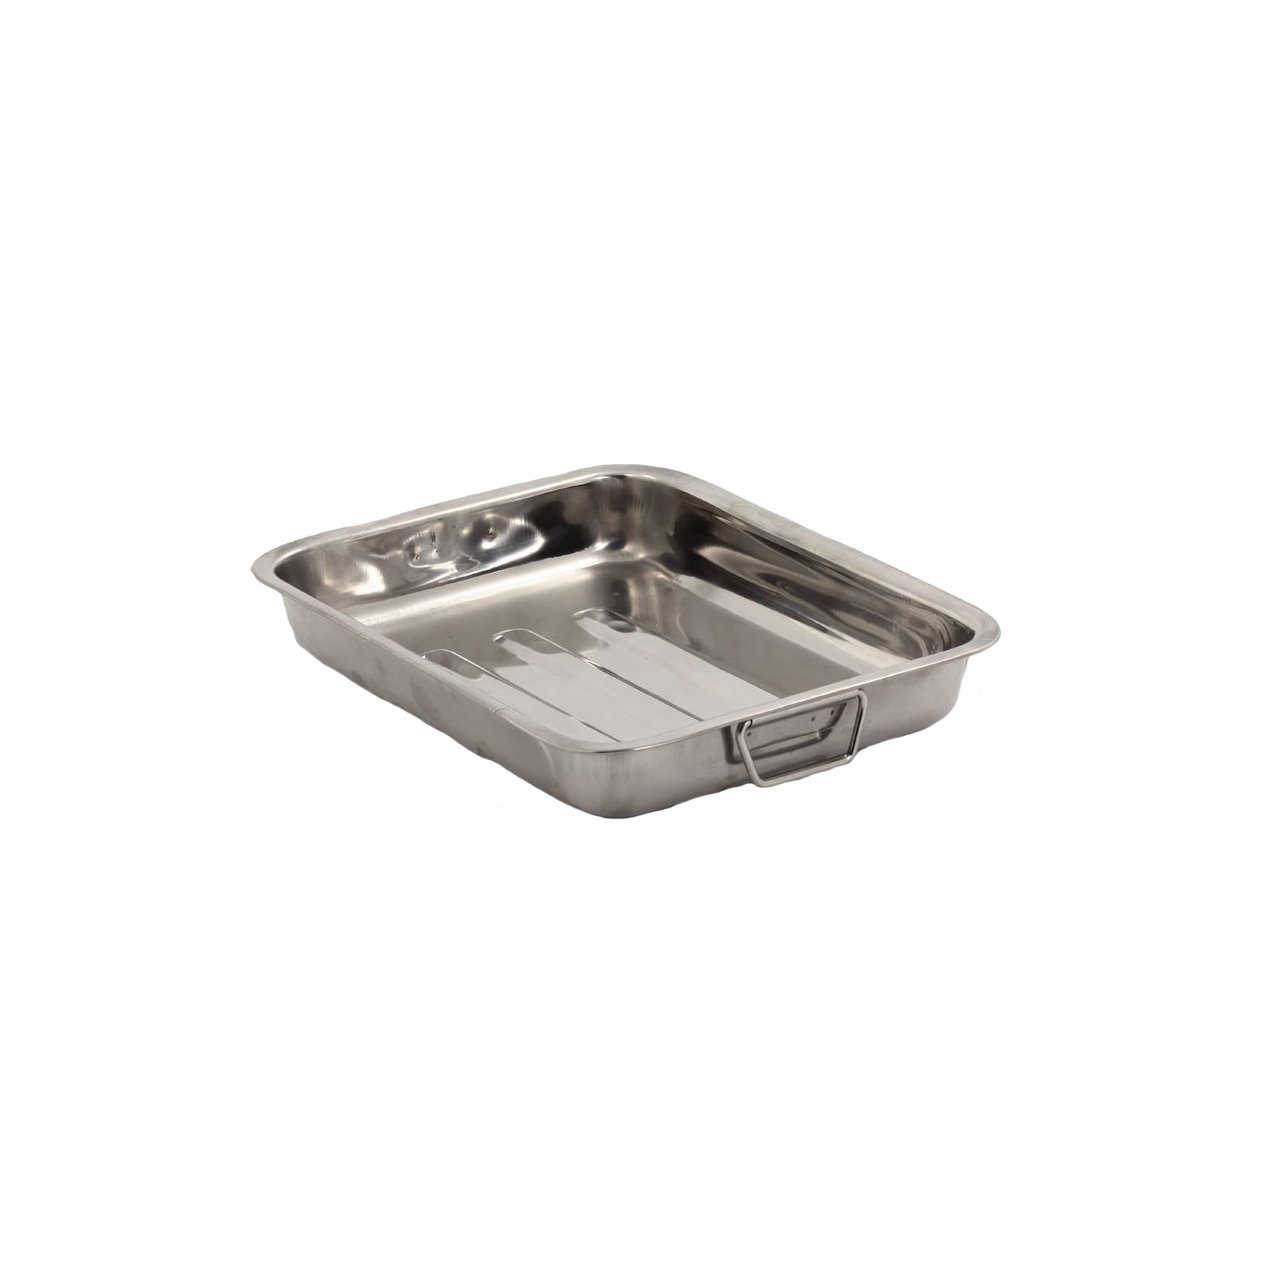 Essential Decor Entrada Collection EN12014 Stainless Steel Lasagna Grill, 14-Inch